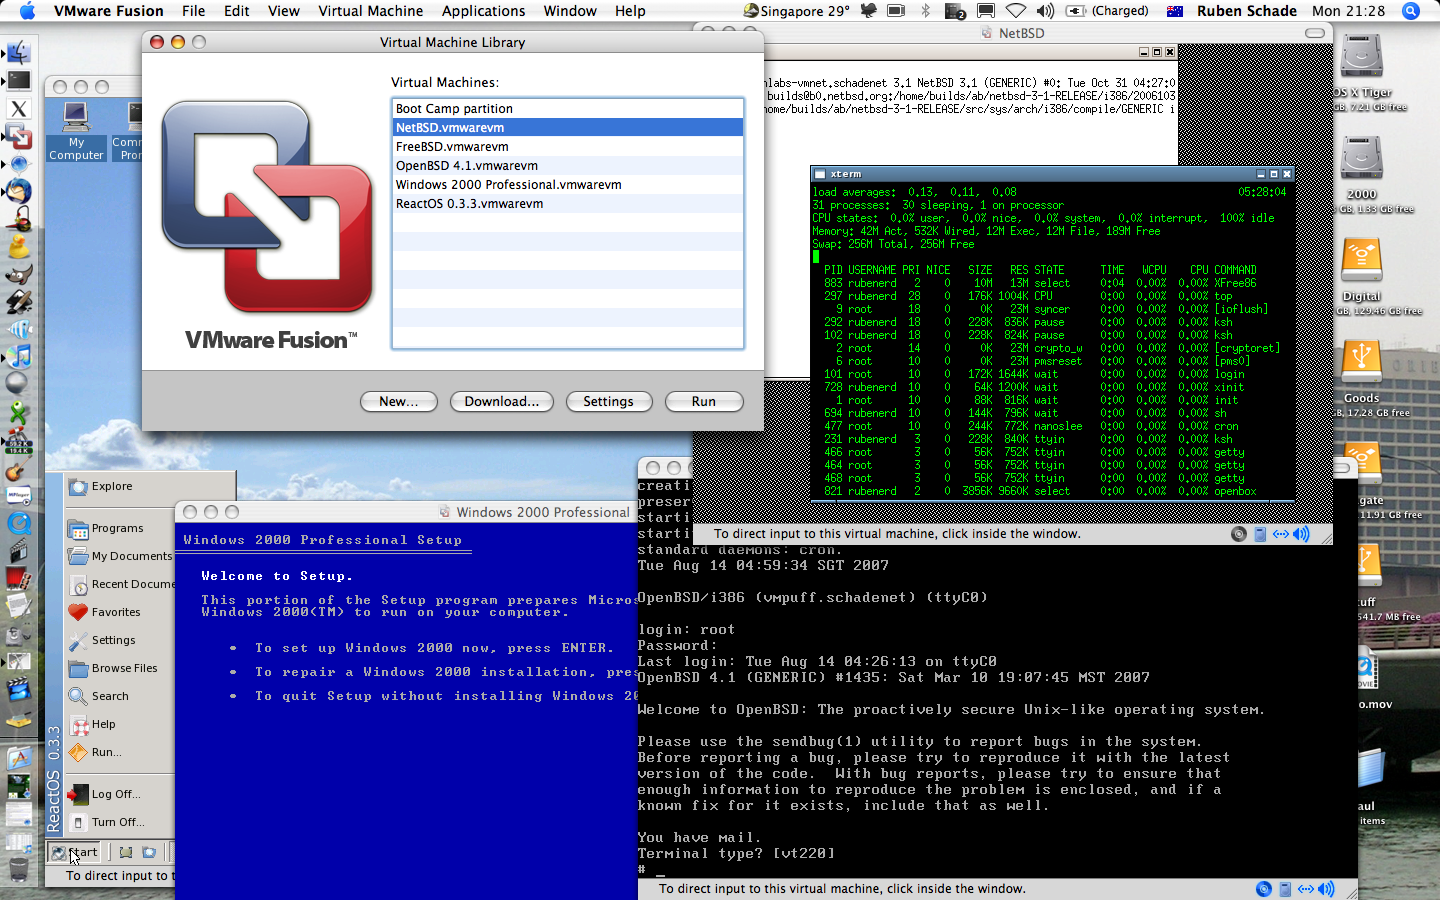 Is VMware Fusion 3 worth buying?